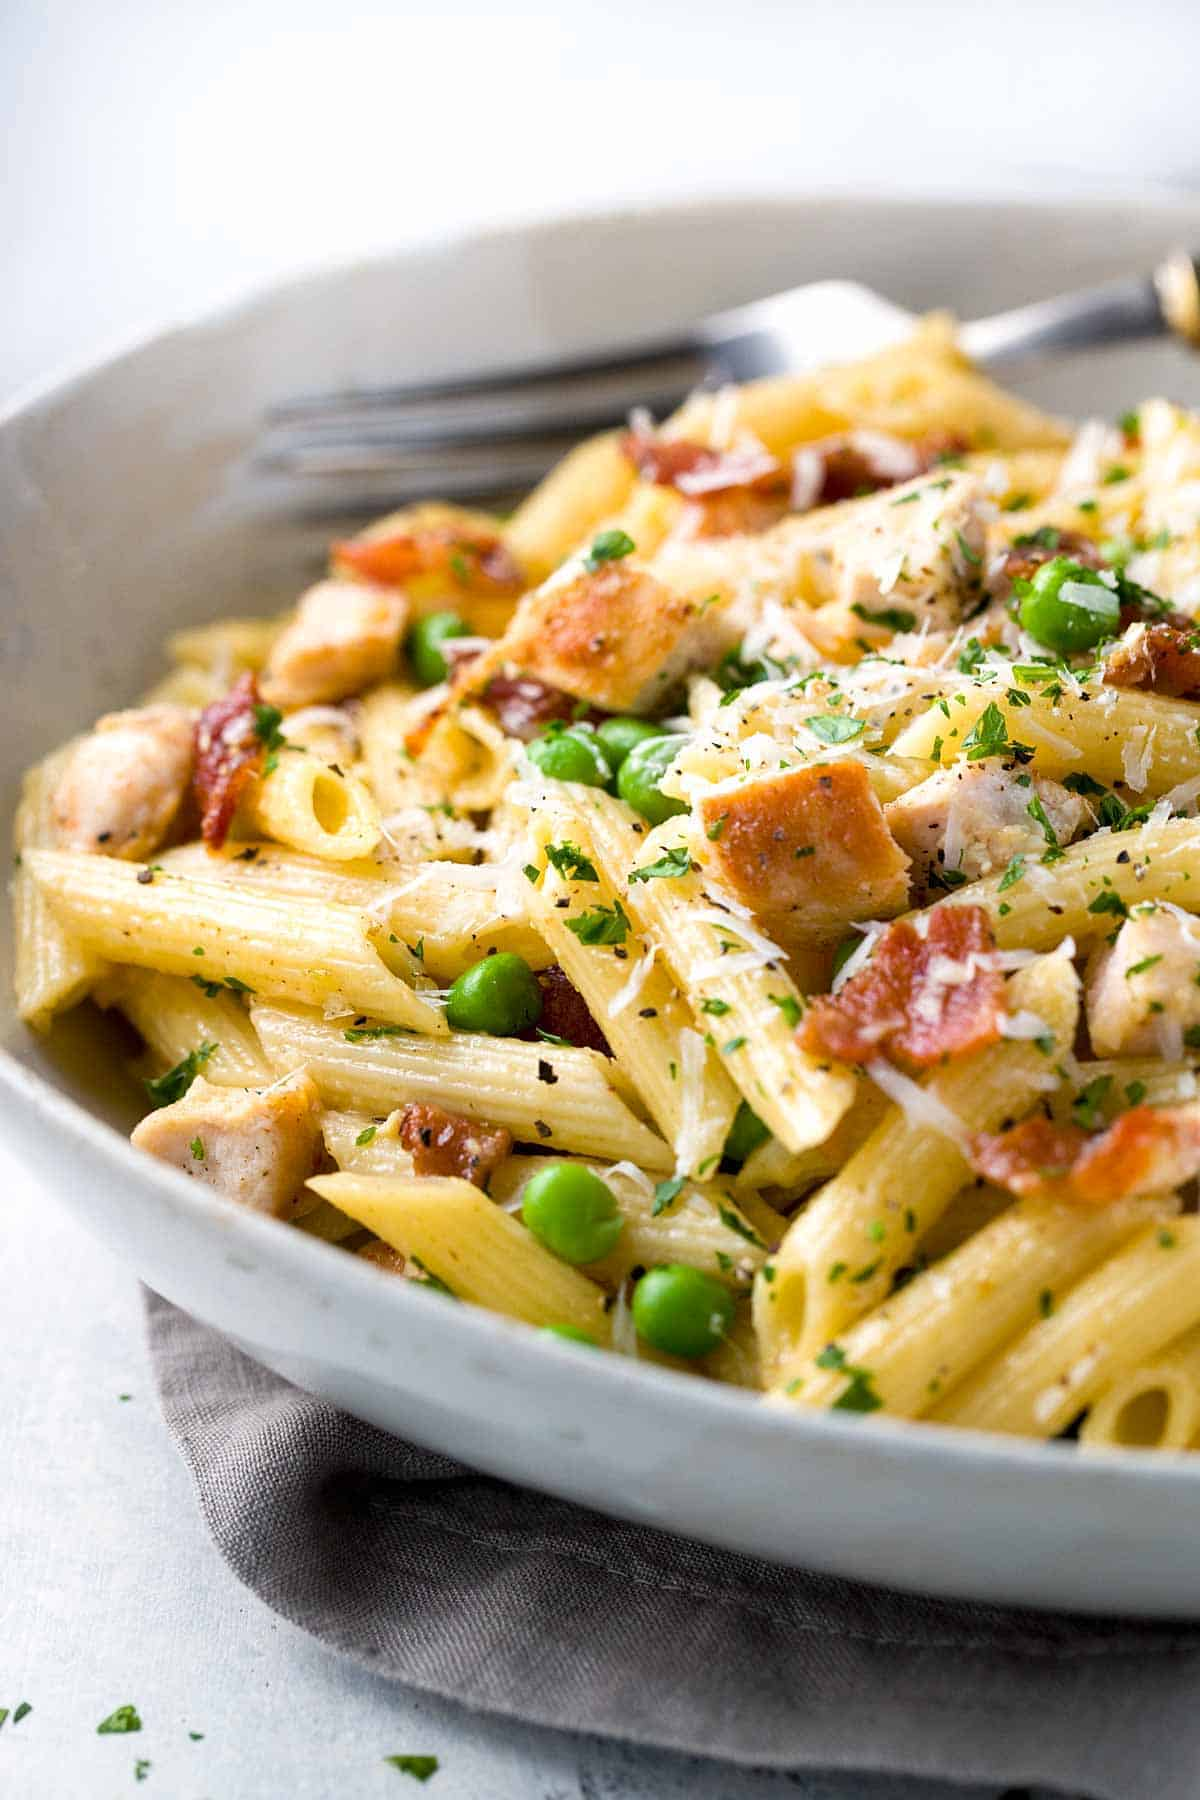 One Pan Chicken Carbonara Penne Pasta- A comforting classic Italian pasta recipe! Tender penne tossed in a luscious parmesan sauce with bacon and peas. | jessicagavin.com